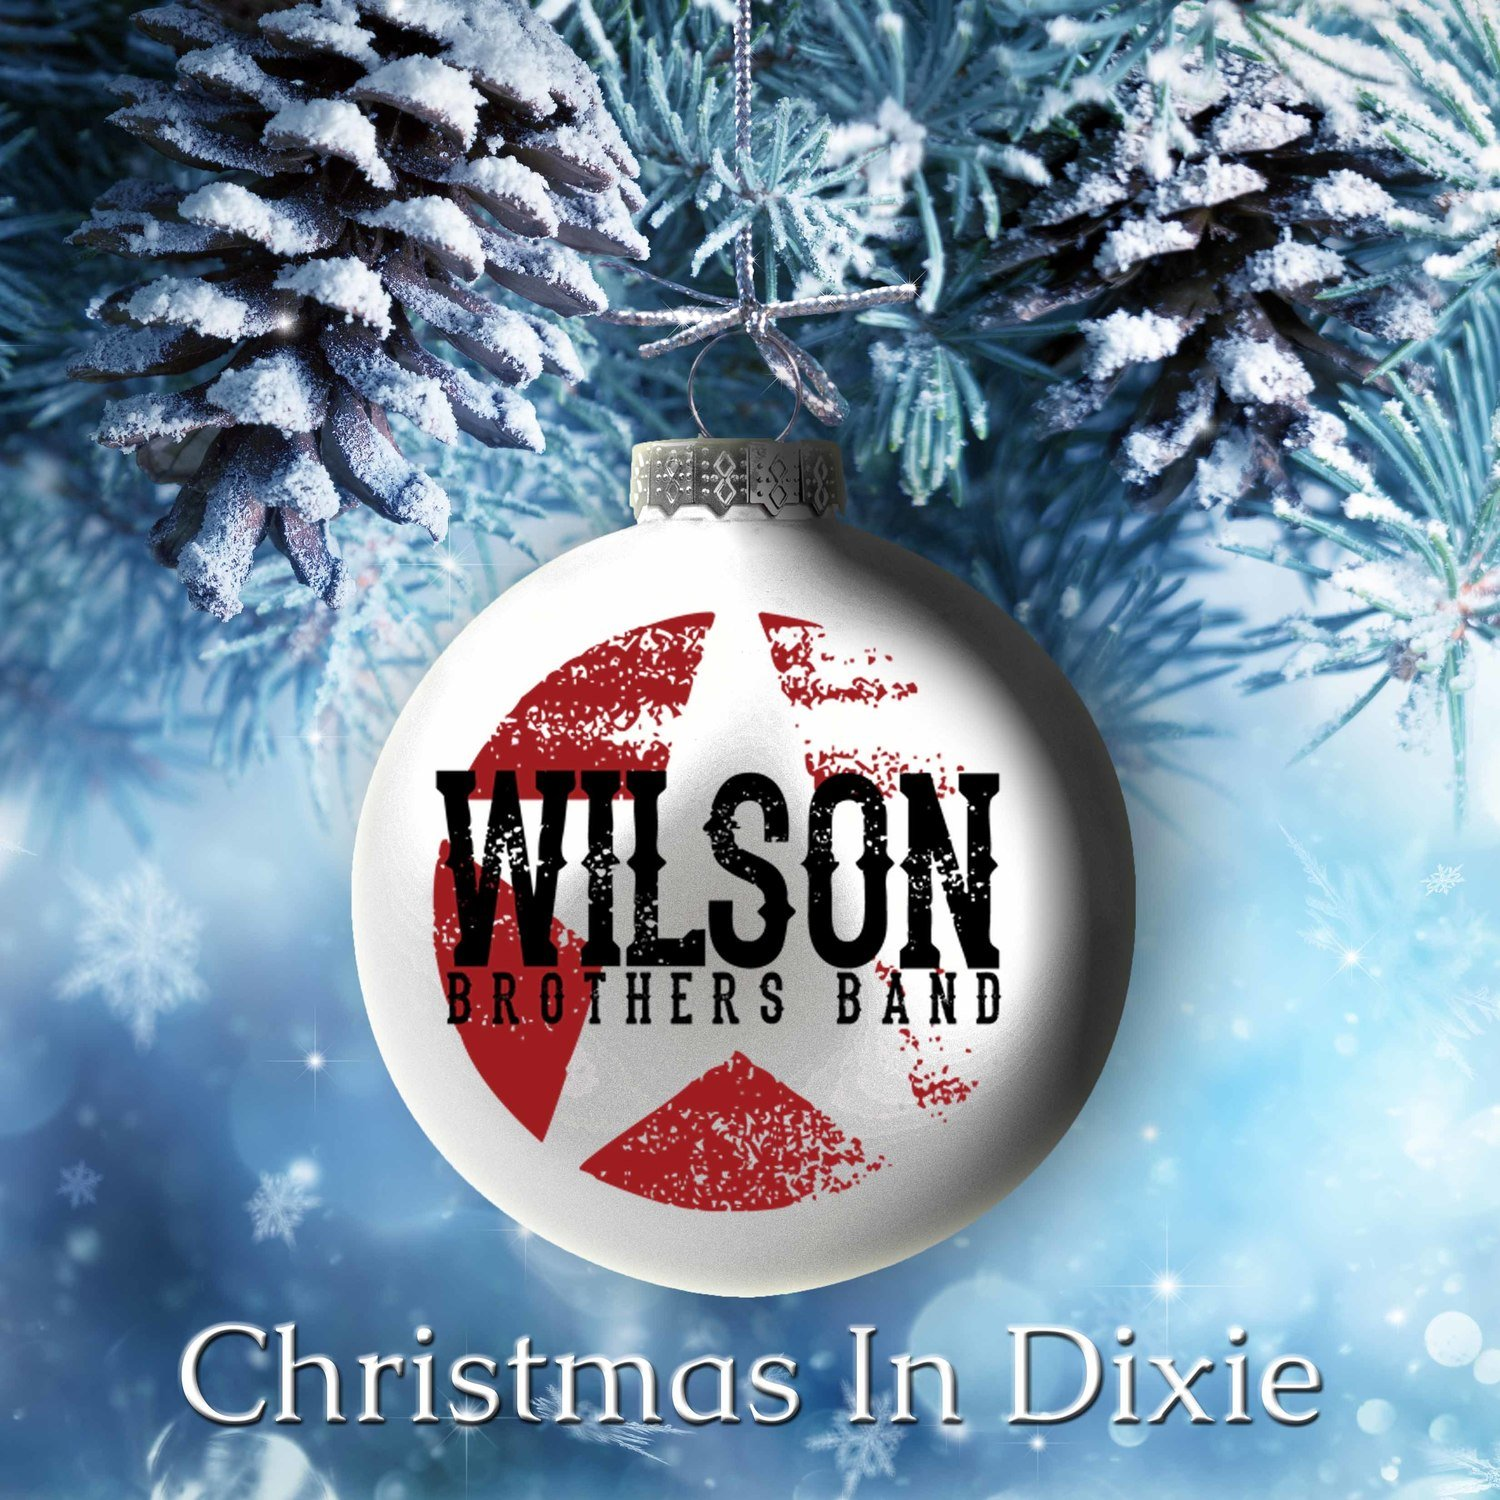 Christmas In Dixie.Wilson Brothers Band Christmas In Dixie Single